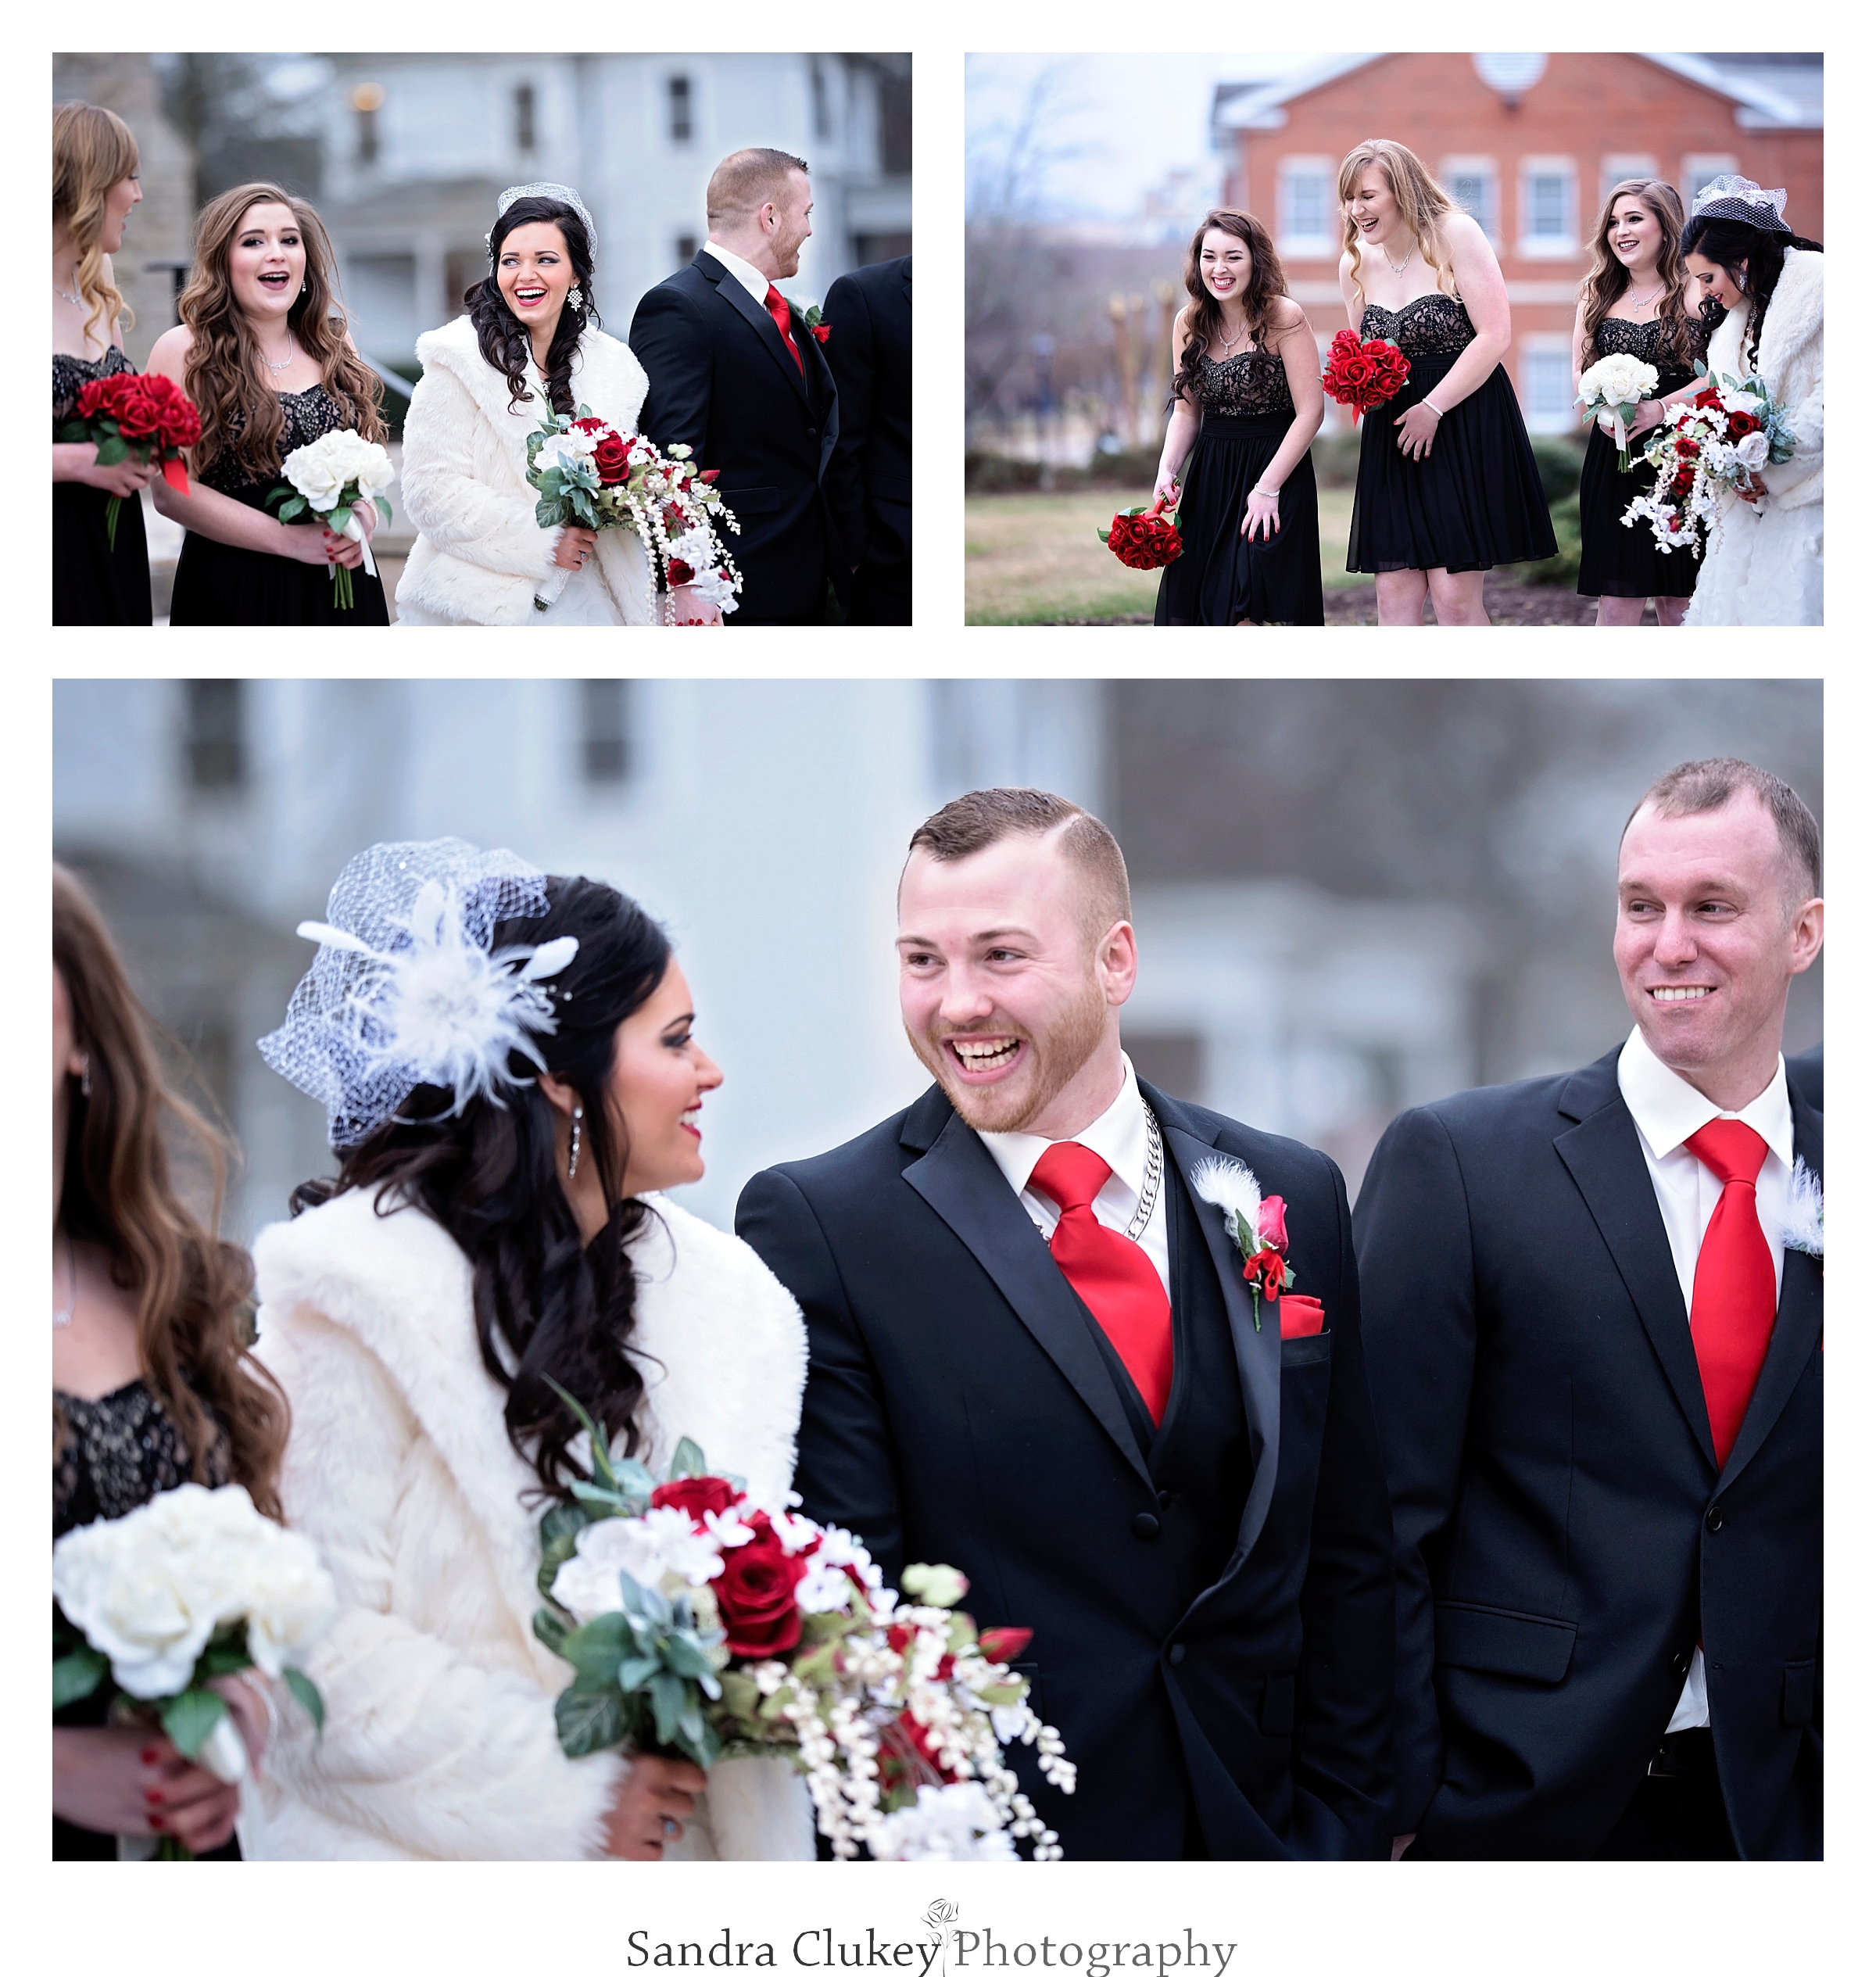 Wedding day laughter ensues at  Lee University chapel, Cleveland TN.